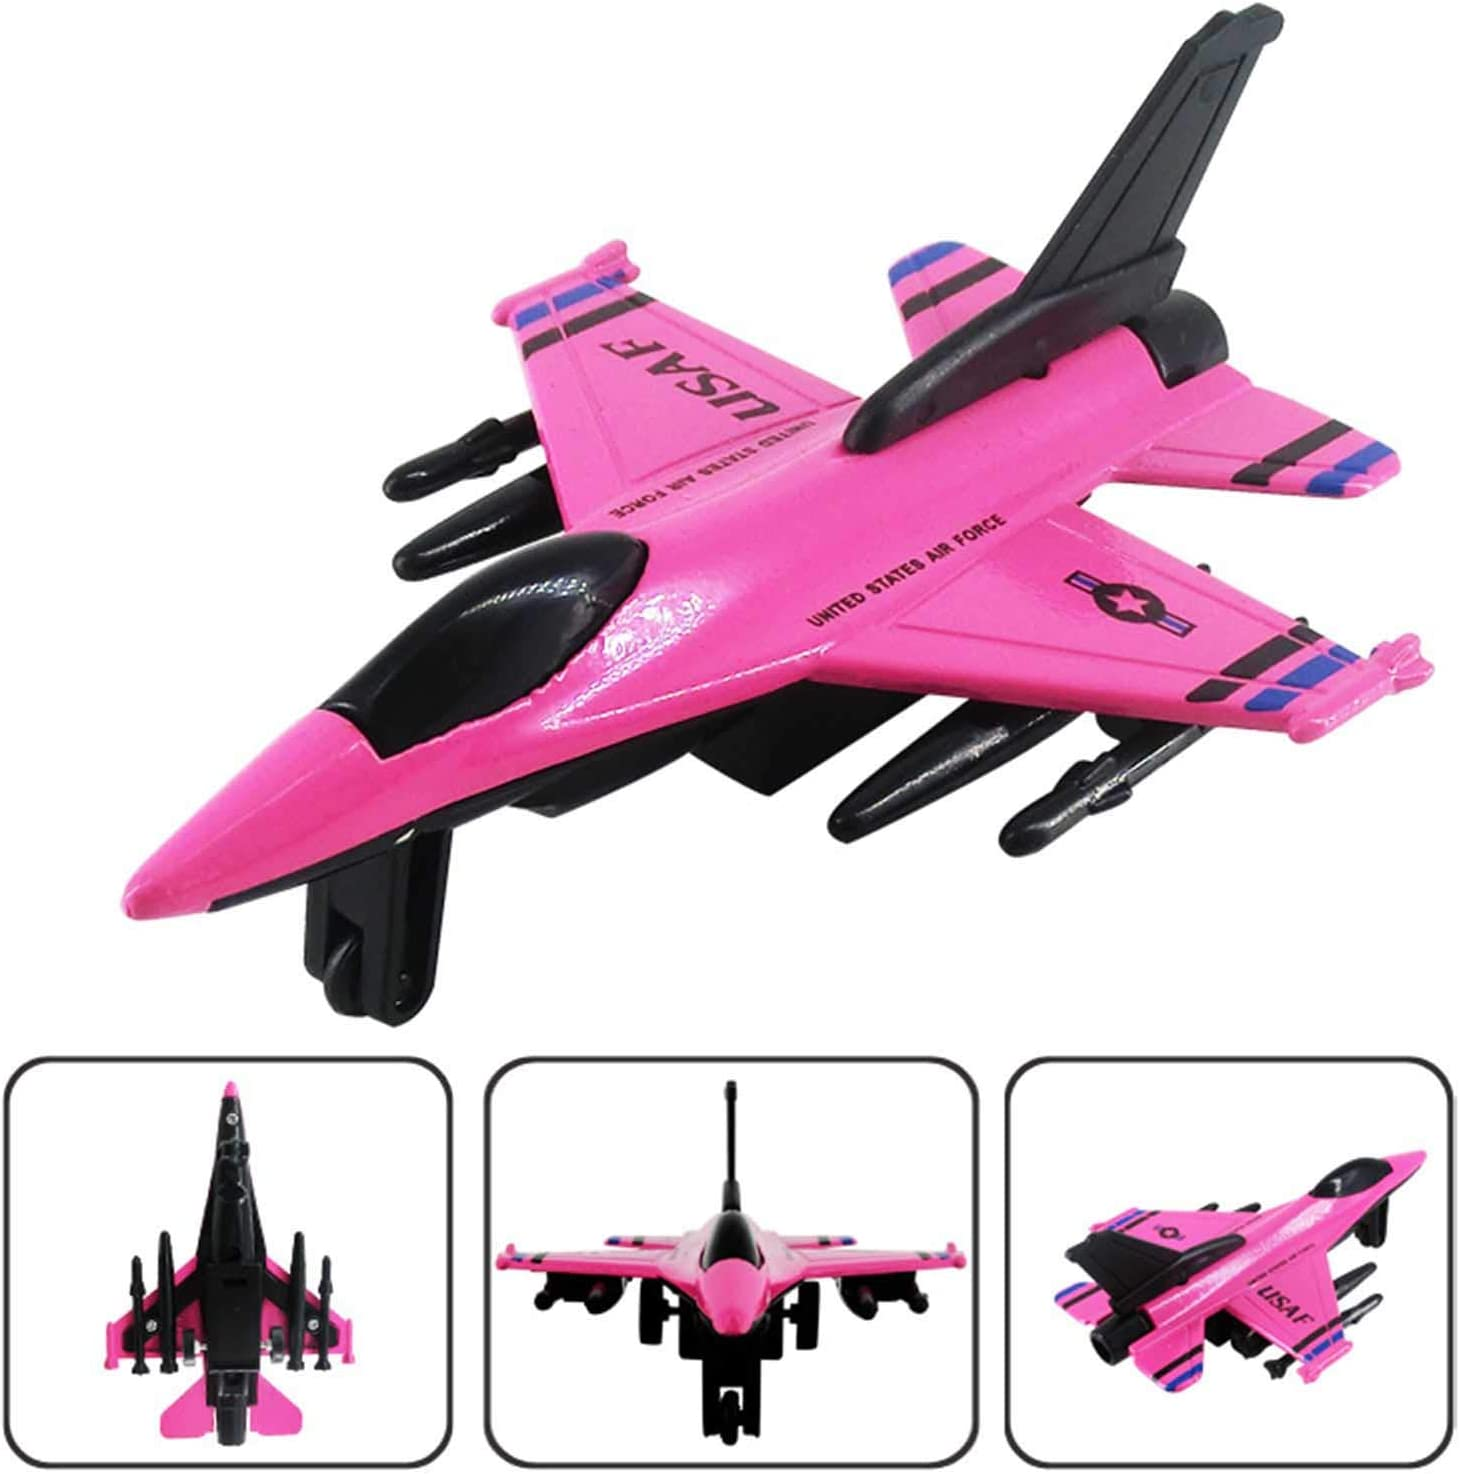 B Saicowordist Pull-Back Airplanes Set Die Cast Metal Military Themed Fighter Jets Air Force Fighter Planes Best Toy Gift Set For Kids Plane Toys For Boys And Girls